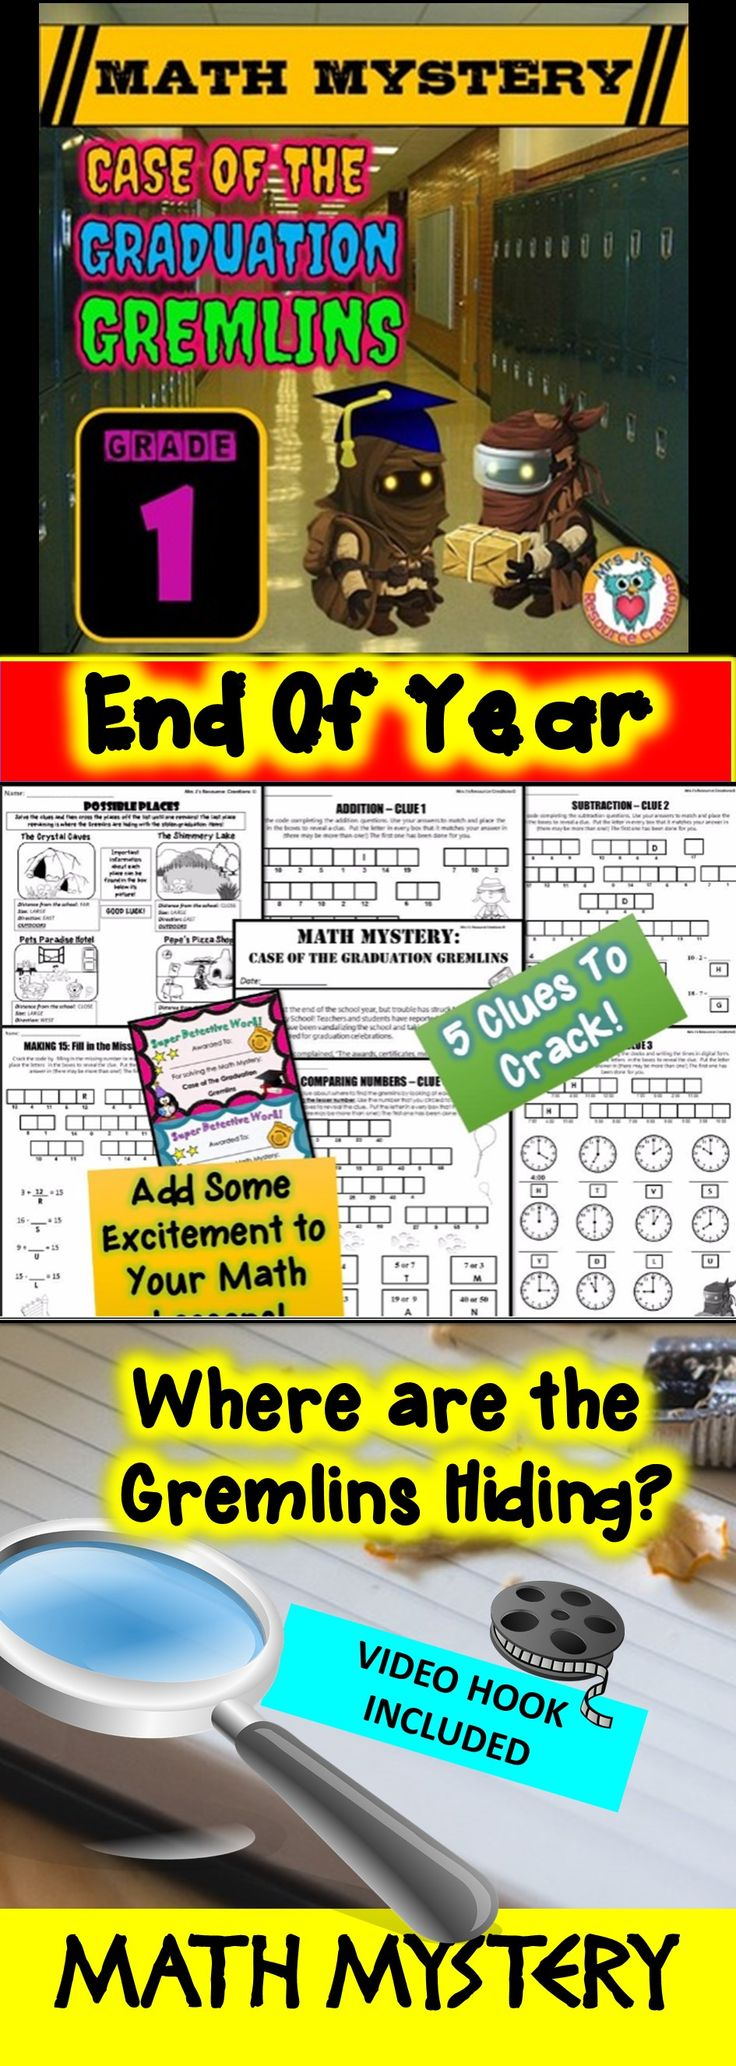 End of Year Math Mystery: Case of The Graduation Gremlins - First Grade Version. Fun math review activity!